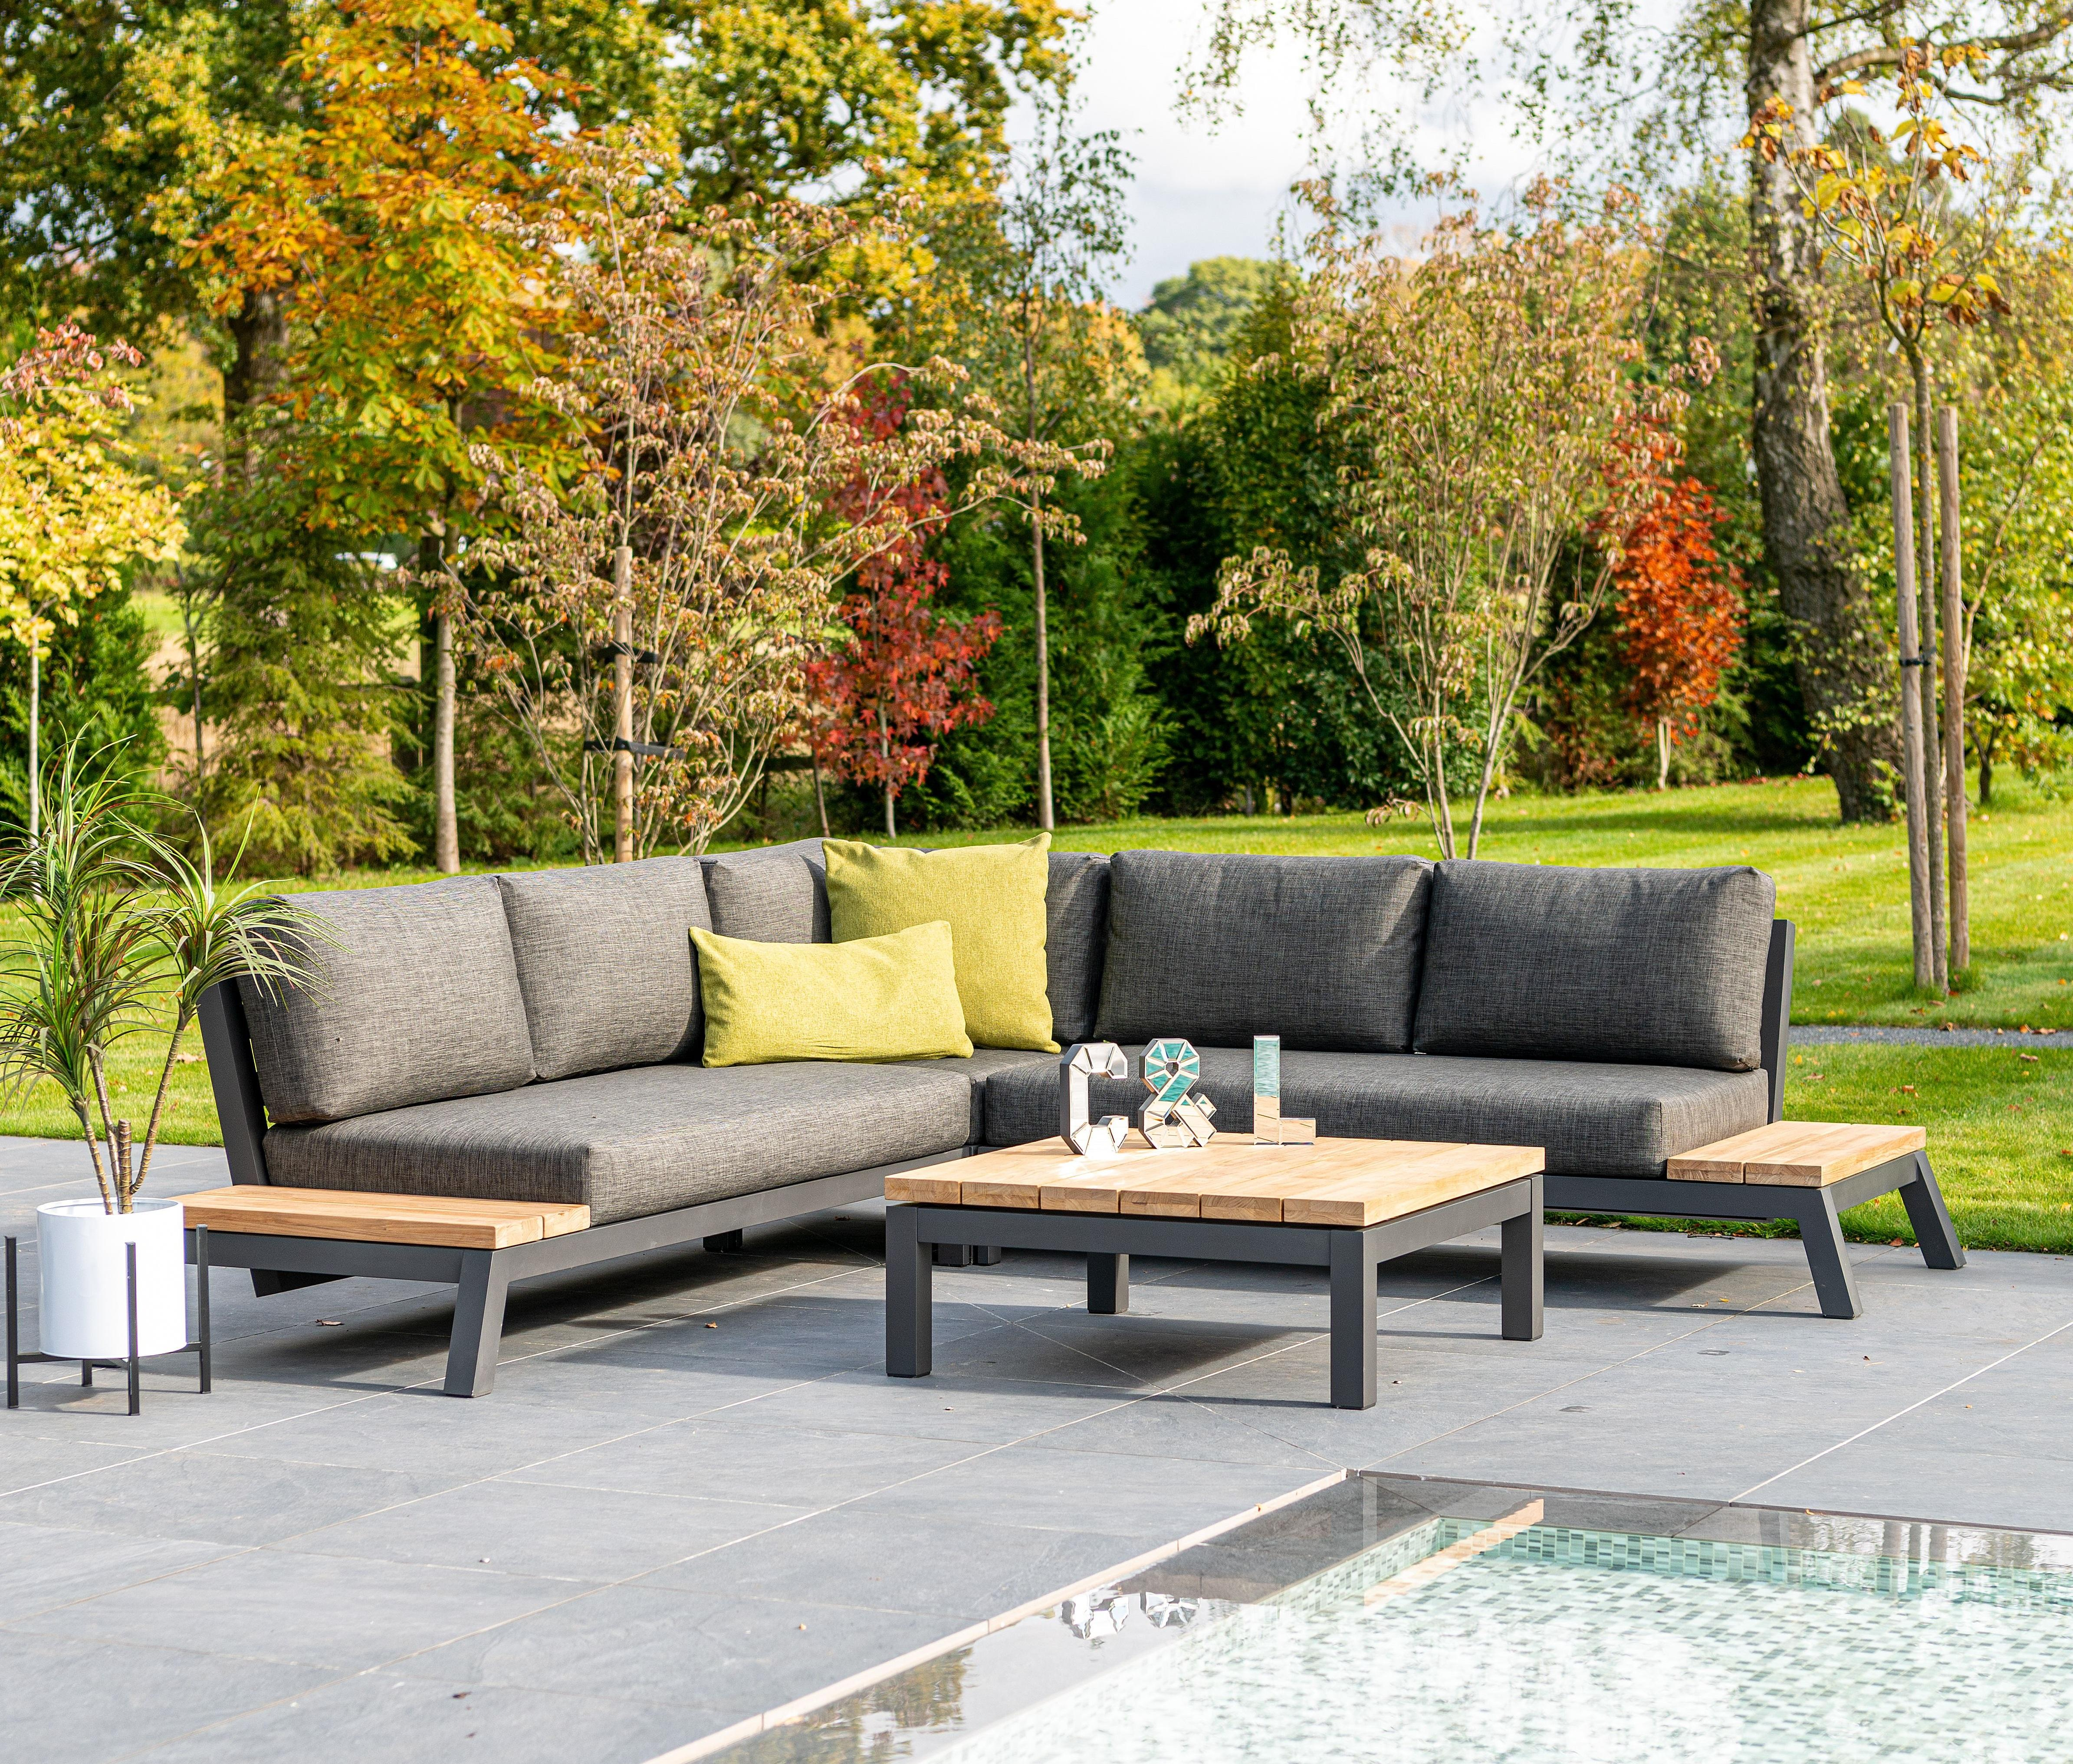 smaller corner garden lounge furniture set L shape with weatherproof cushions in grey